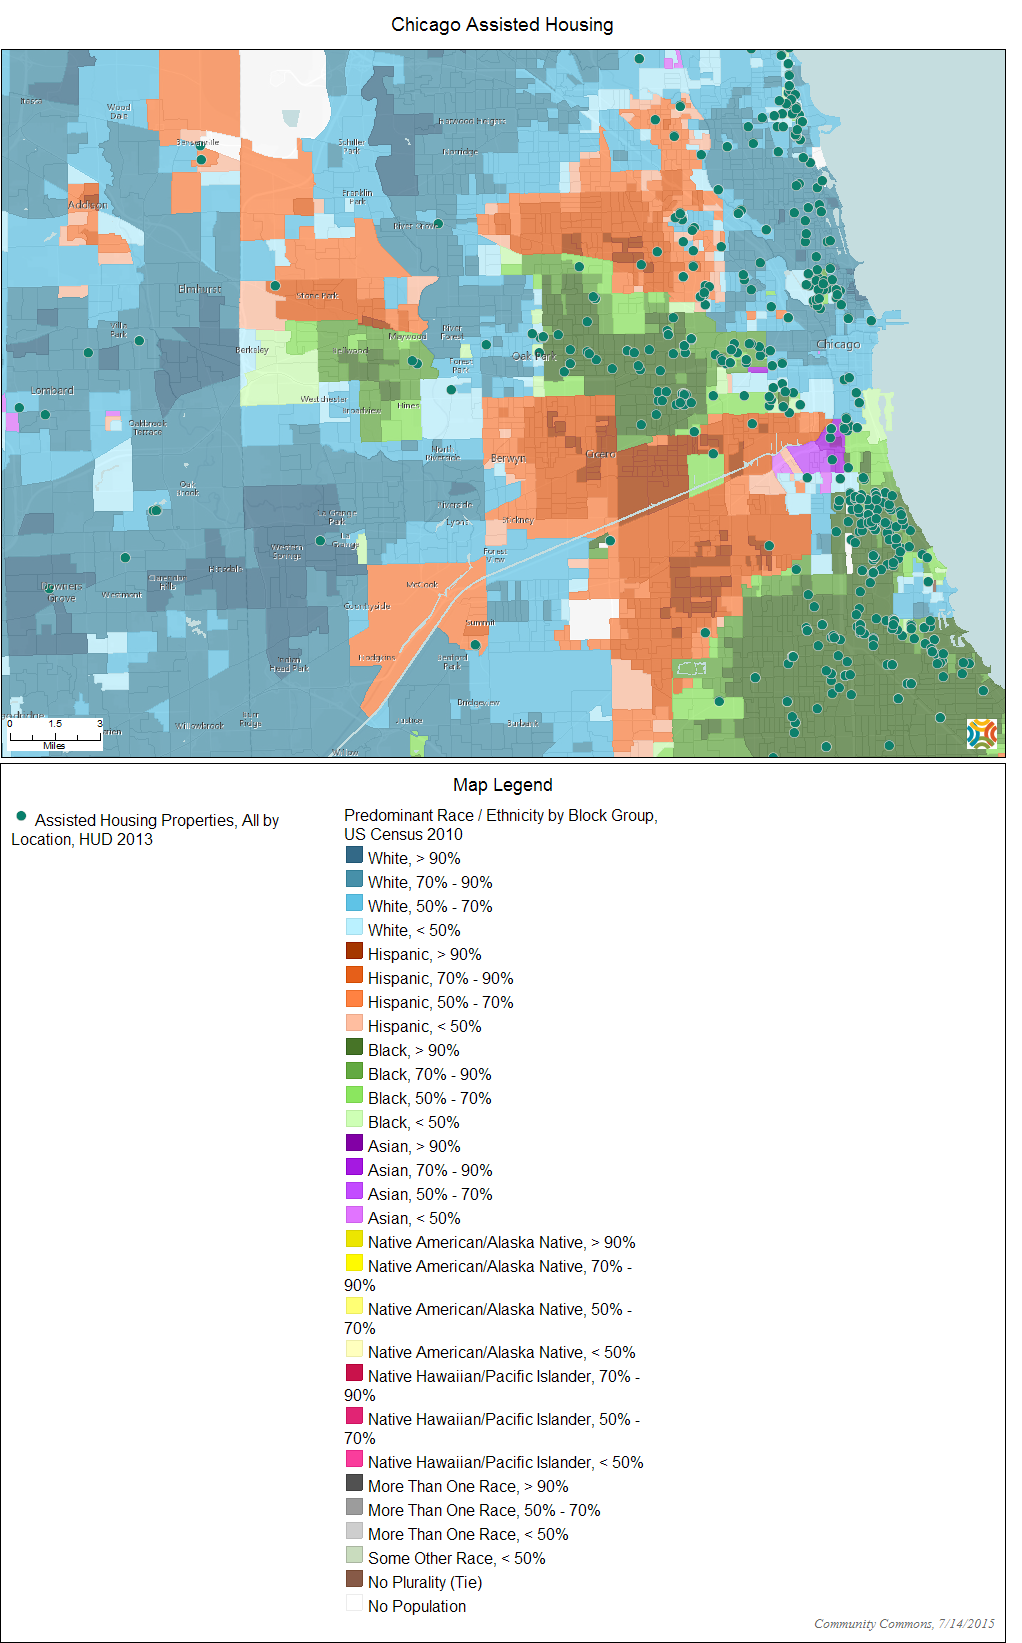 Chicago Assisted Housing